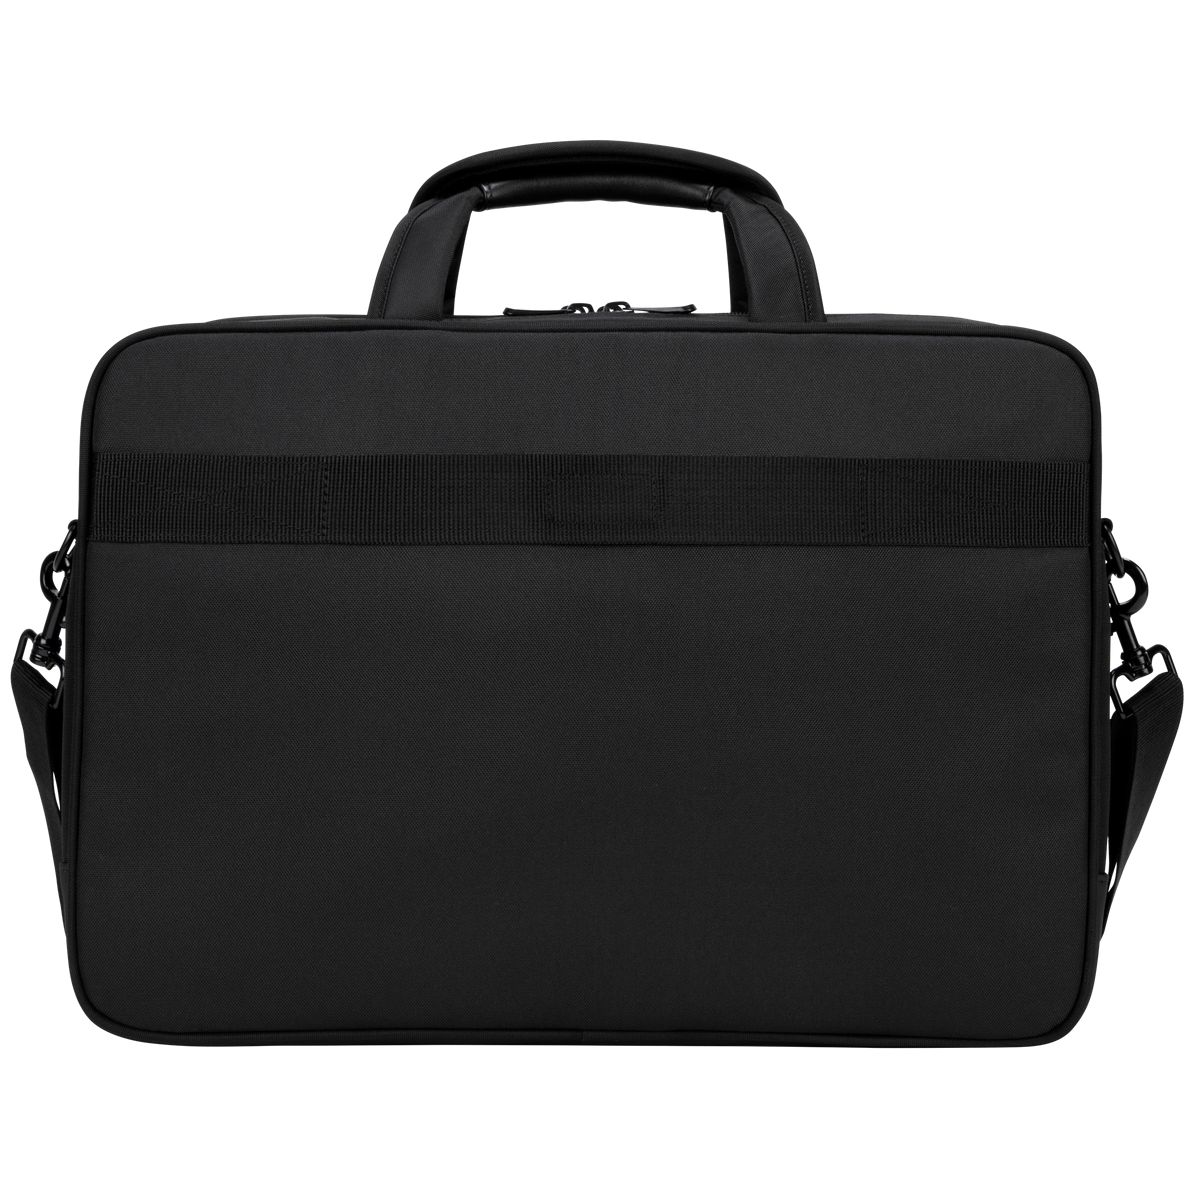 Briefcase transparent display. Blacktop deluxe checkpoint